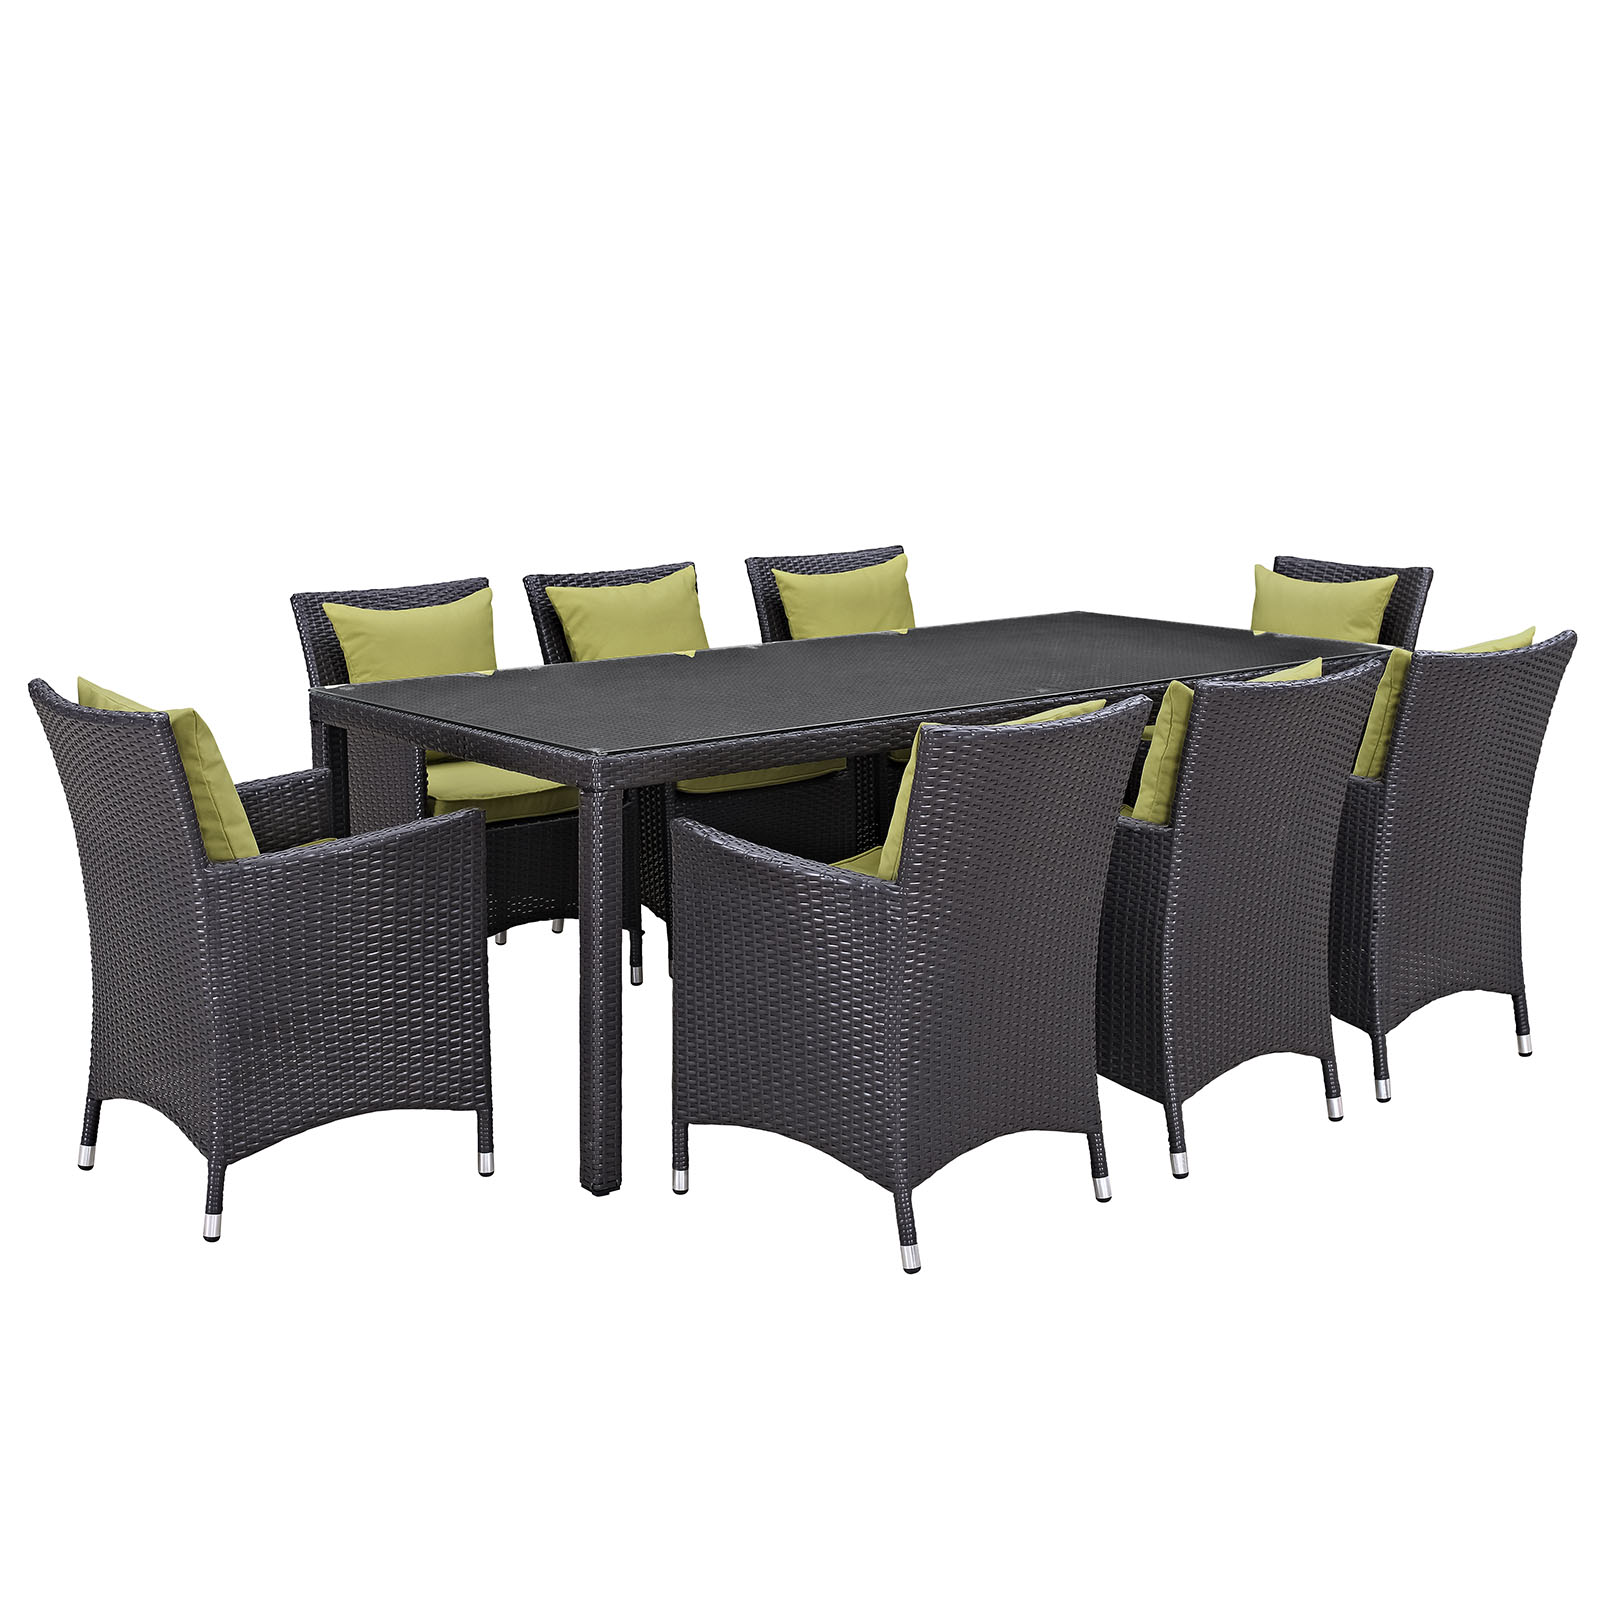 Modern Contemporary Urban Design Outdoor Patio Balcony Nine PCS Dining Chairs and Table Set, Green, Rattan